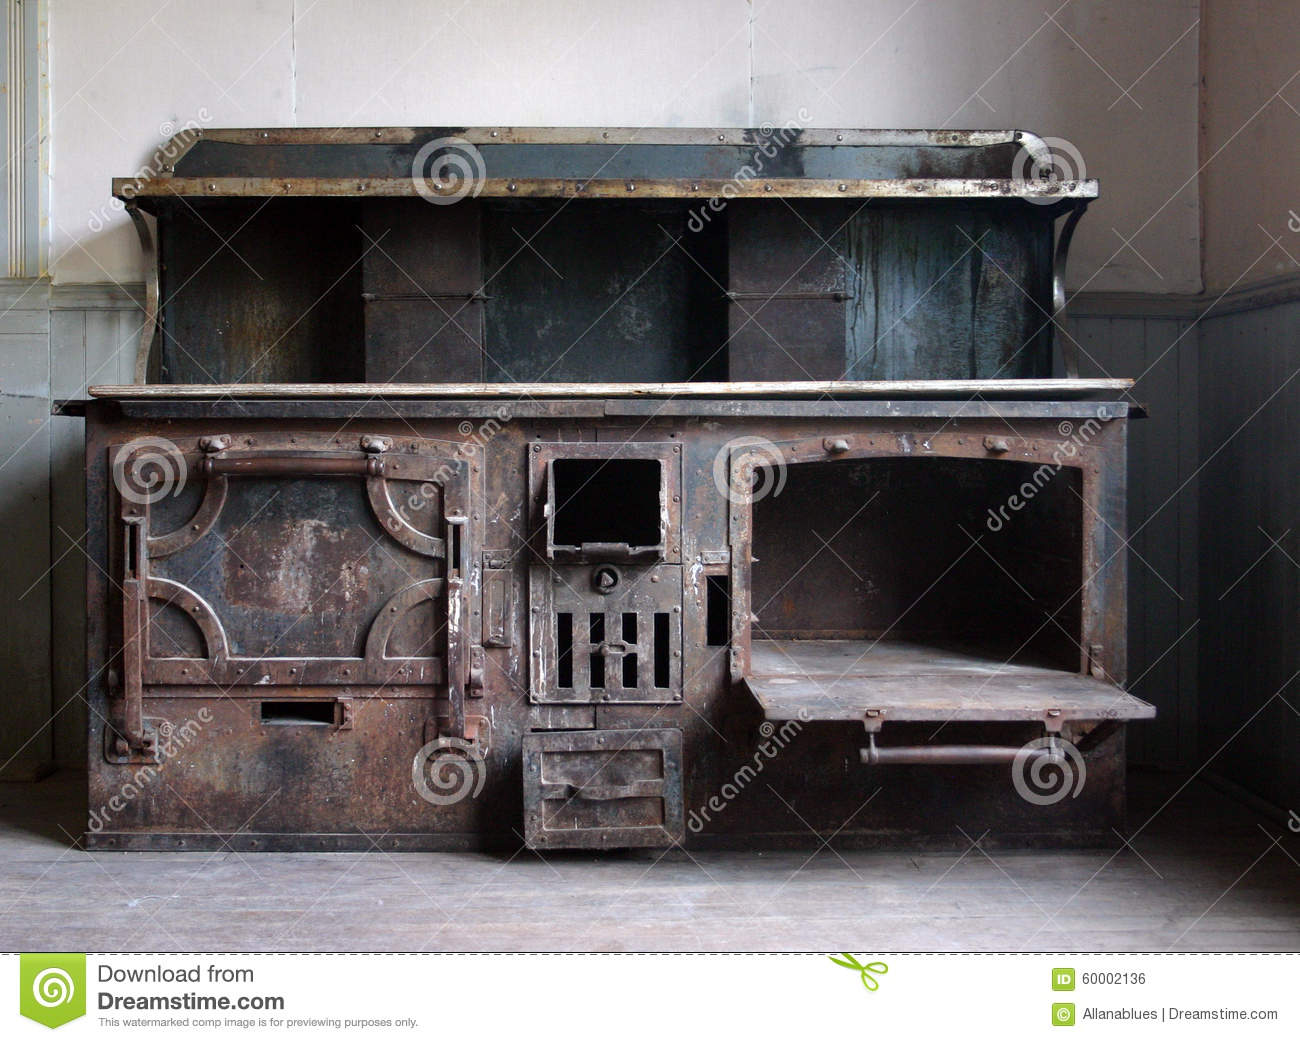 Antique Wood Cooking Stove - Antique Wood Cooking Stove Stock Photo - Image: 60002136